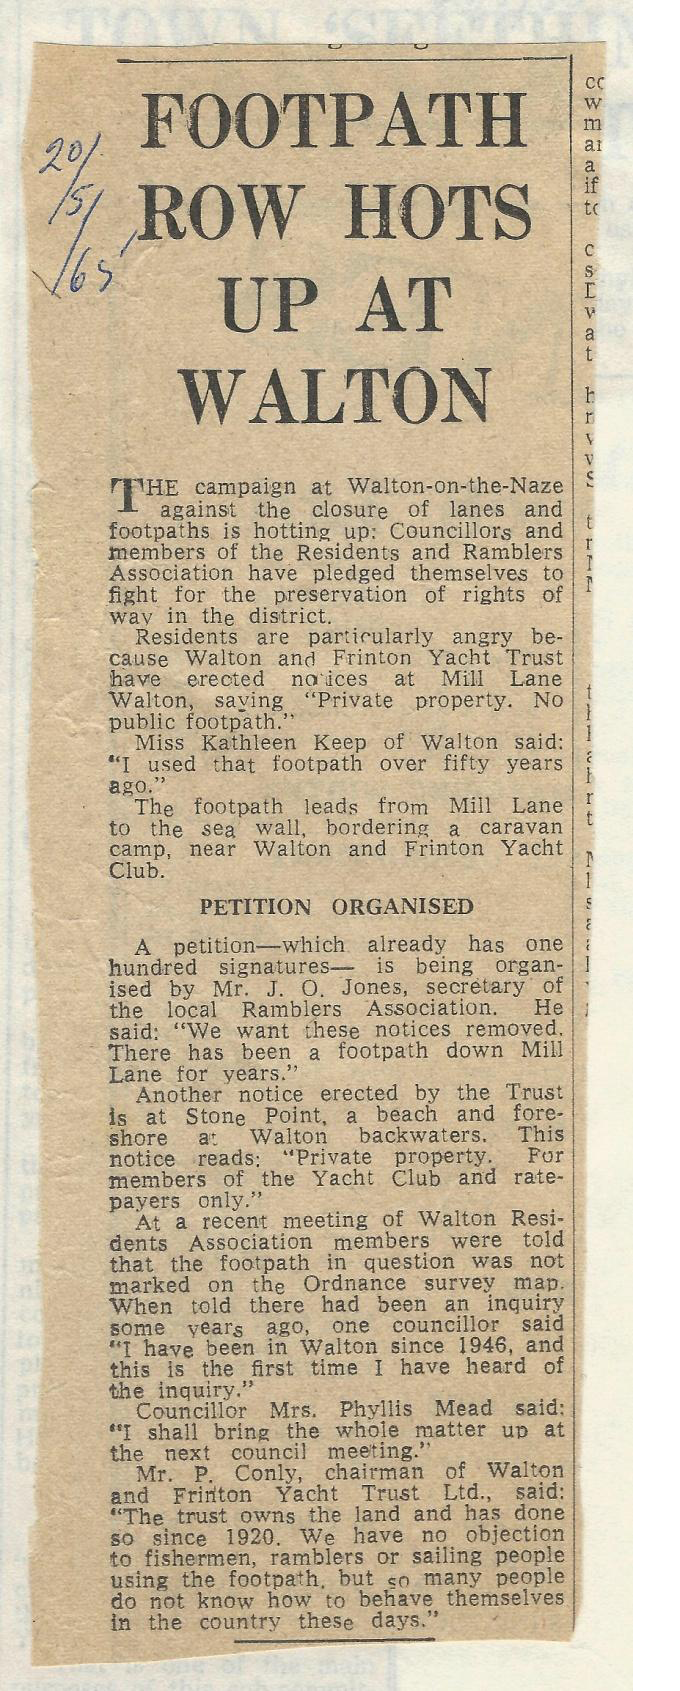 Article In Local Paper From May 1965 About Footpath 37 At Walton-on-the-Naze